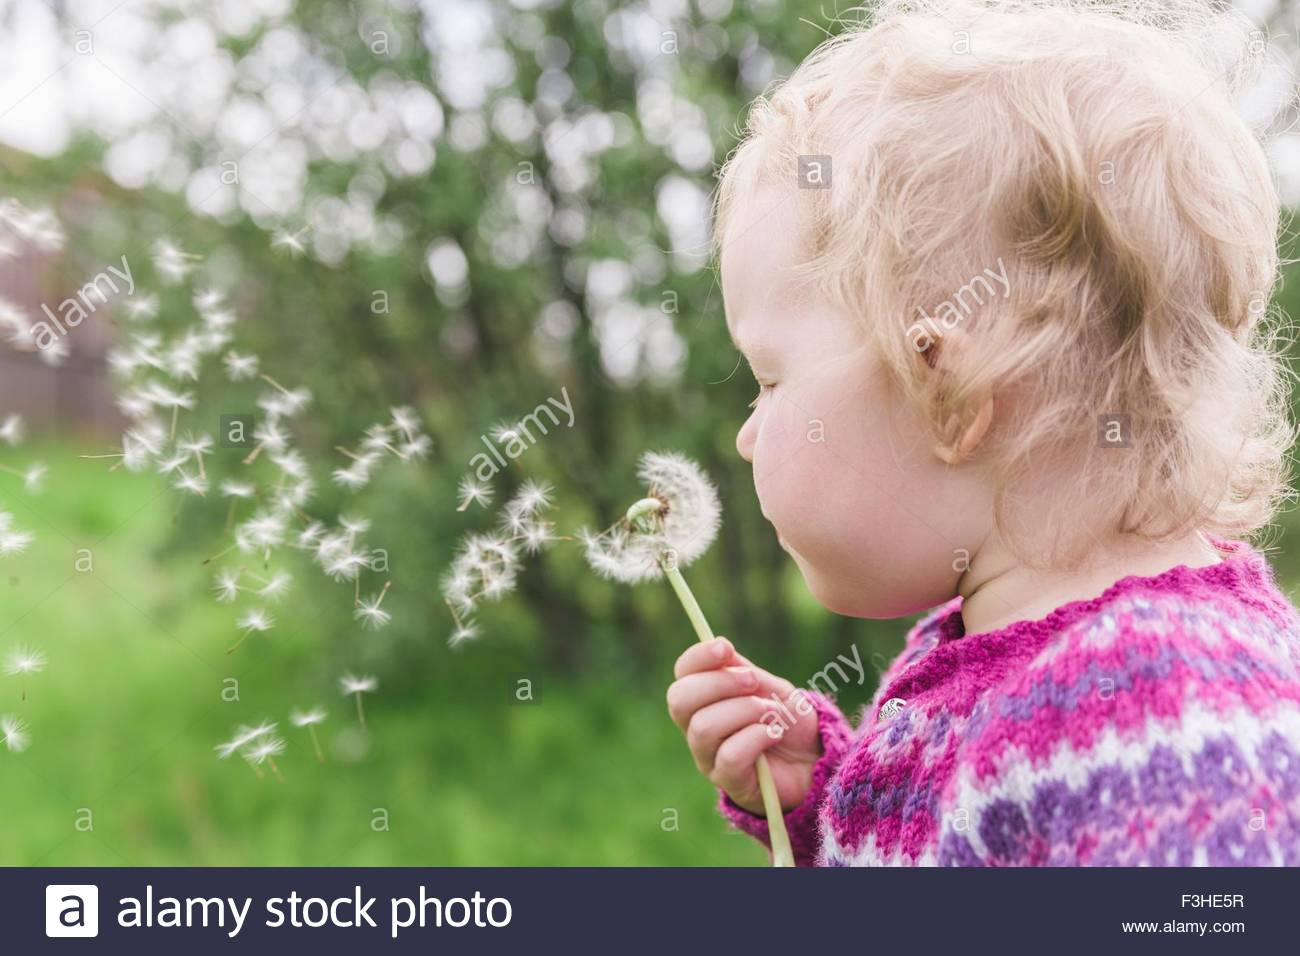 Young girl blowing dandelion clock - Stock Image